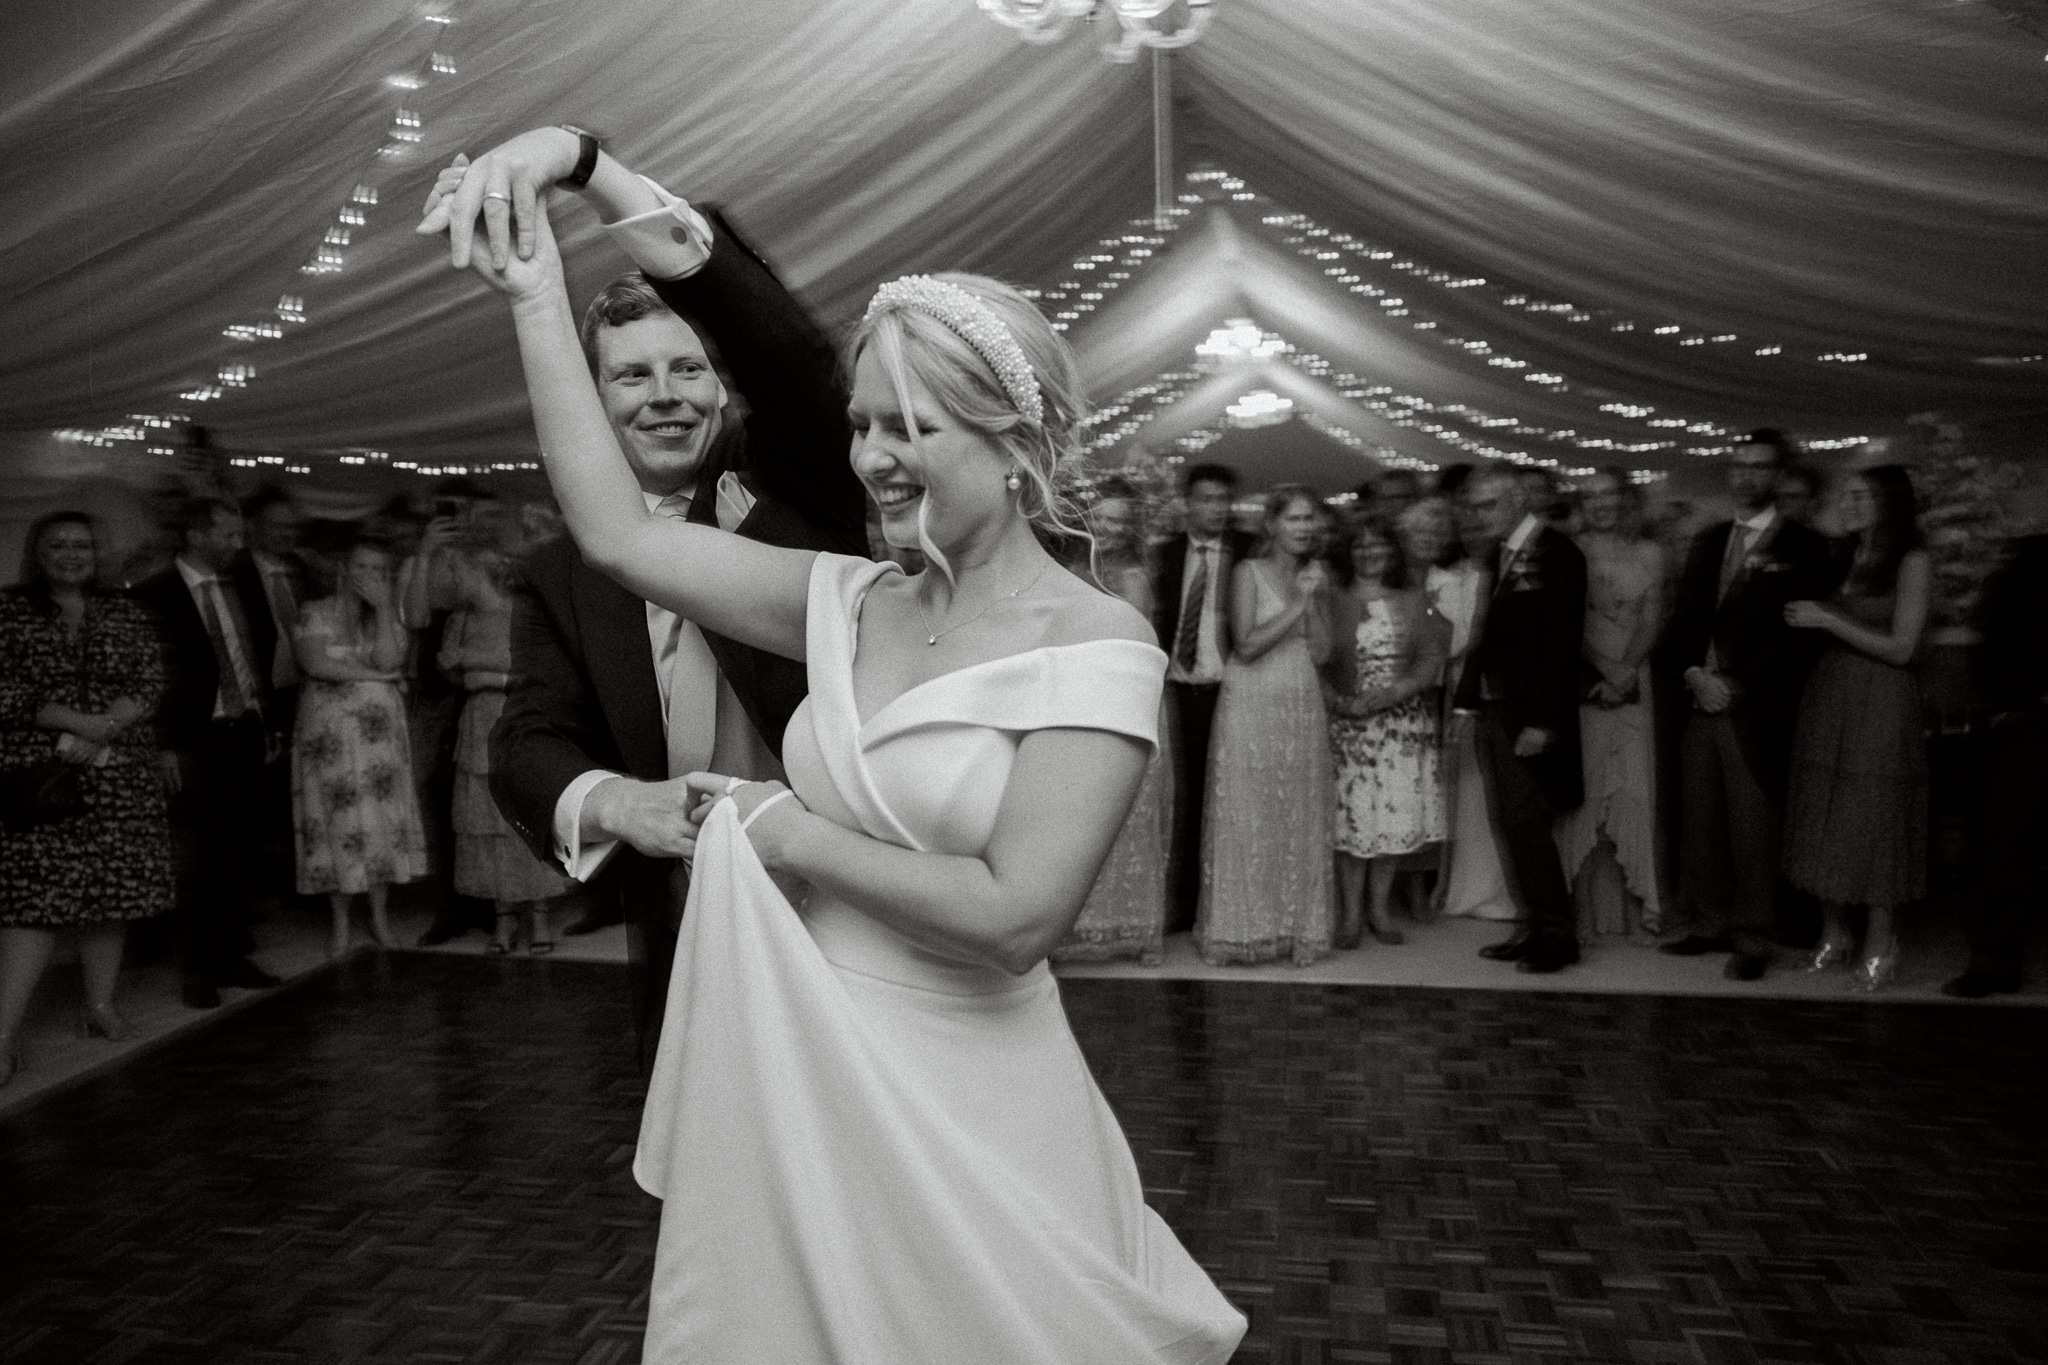 Hastings wedding photography of first dance in Brickwall House wedding marquee